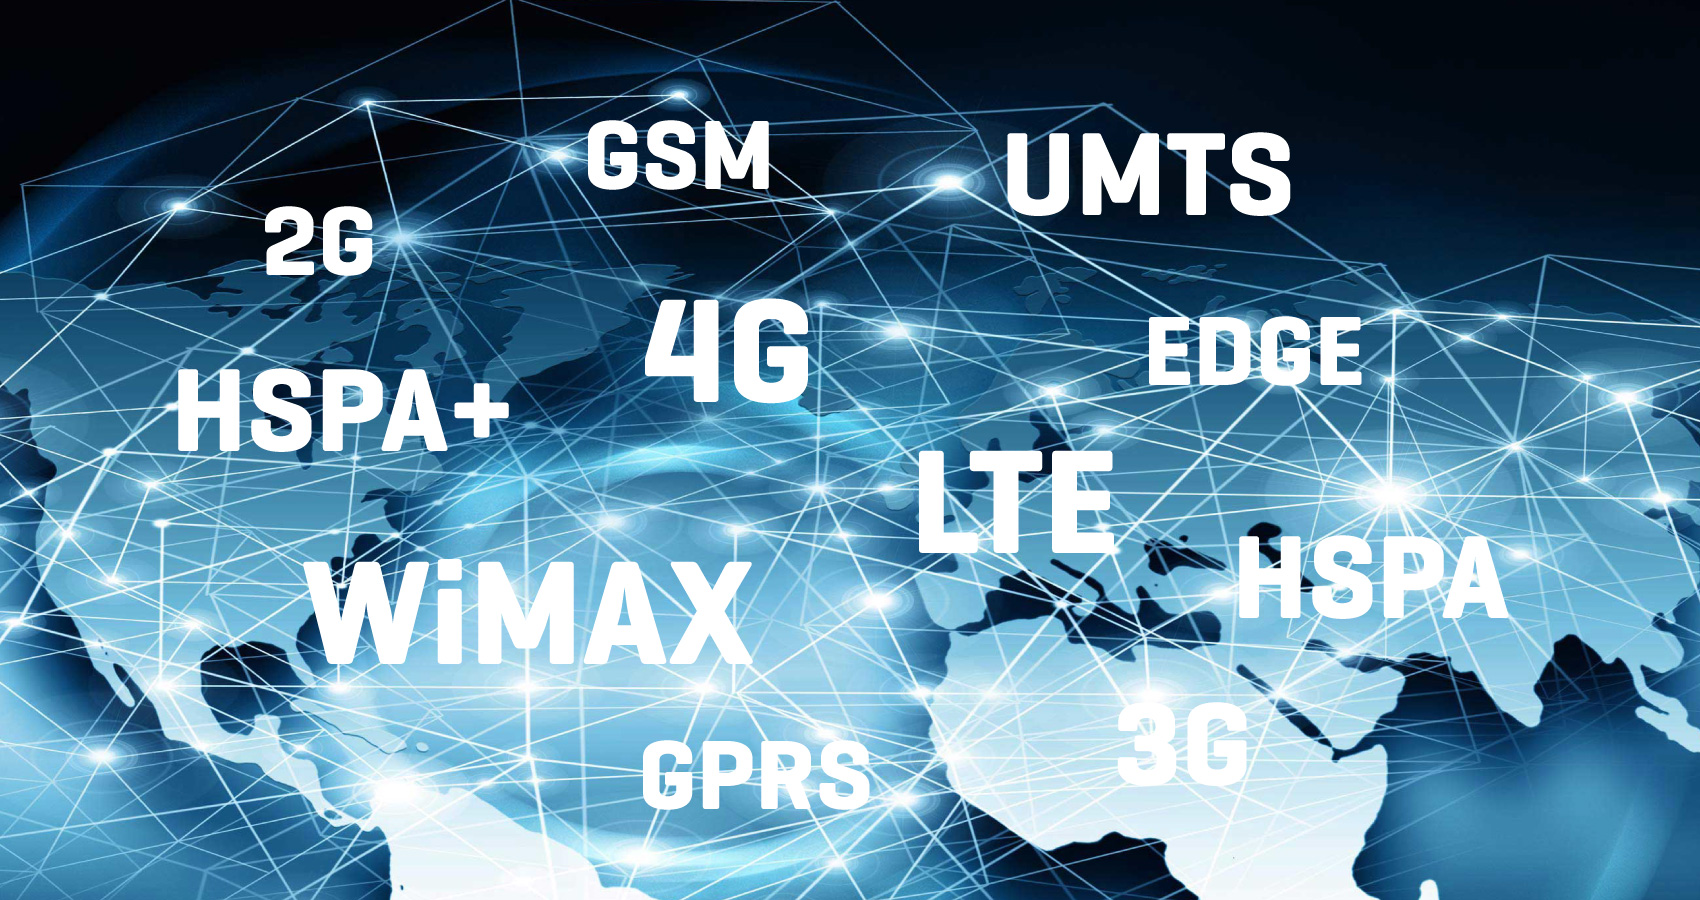 2G / 3G / 4G - Is it all about the speed